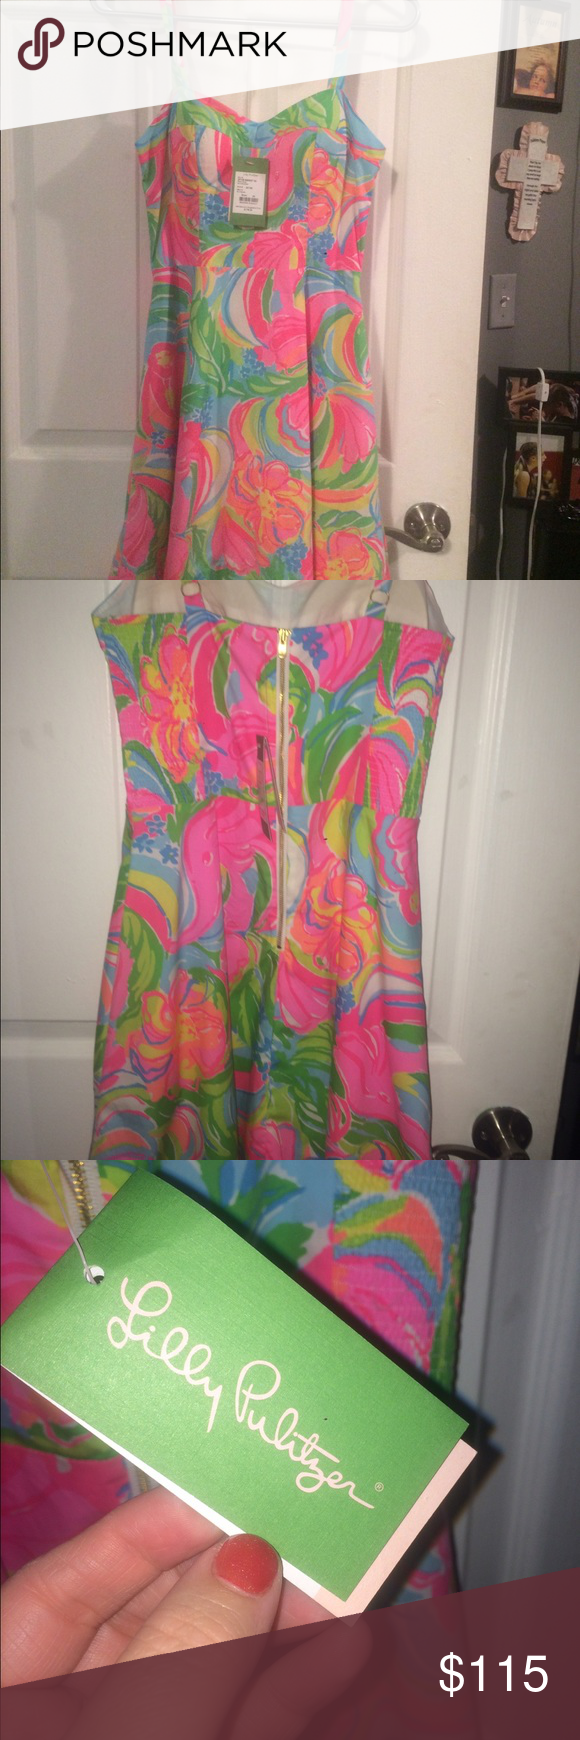 """Lilly Pulitzer """"Willow"""" dress NWT Lilly Pulitzer """"Willow"""" sun dress. Never worn.  Size 00. Originally paid $178. Knee length or just above the knee. Perfect dress for the approaching season! Lilly Pulitzer Dresses Mini"""